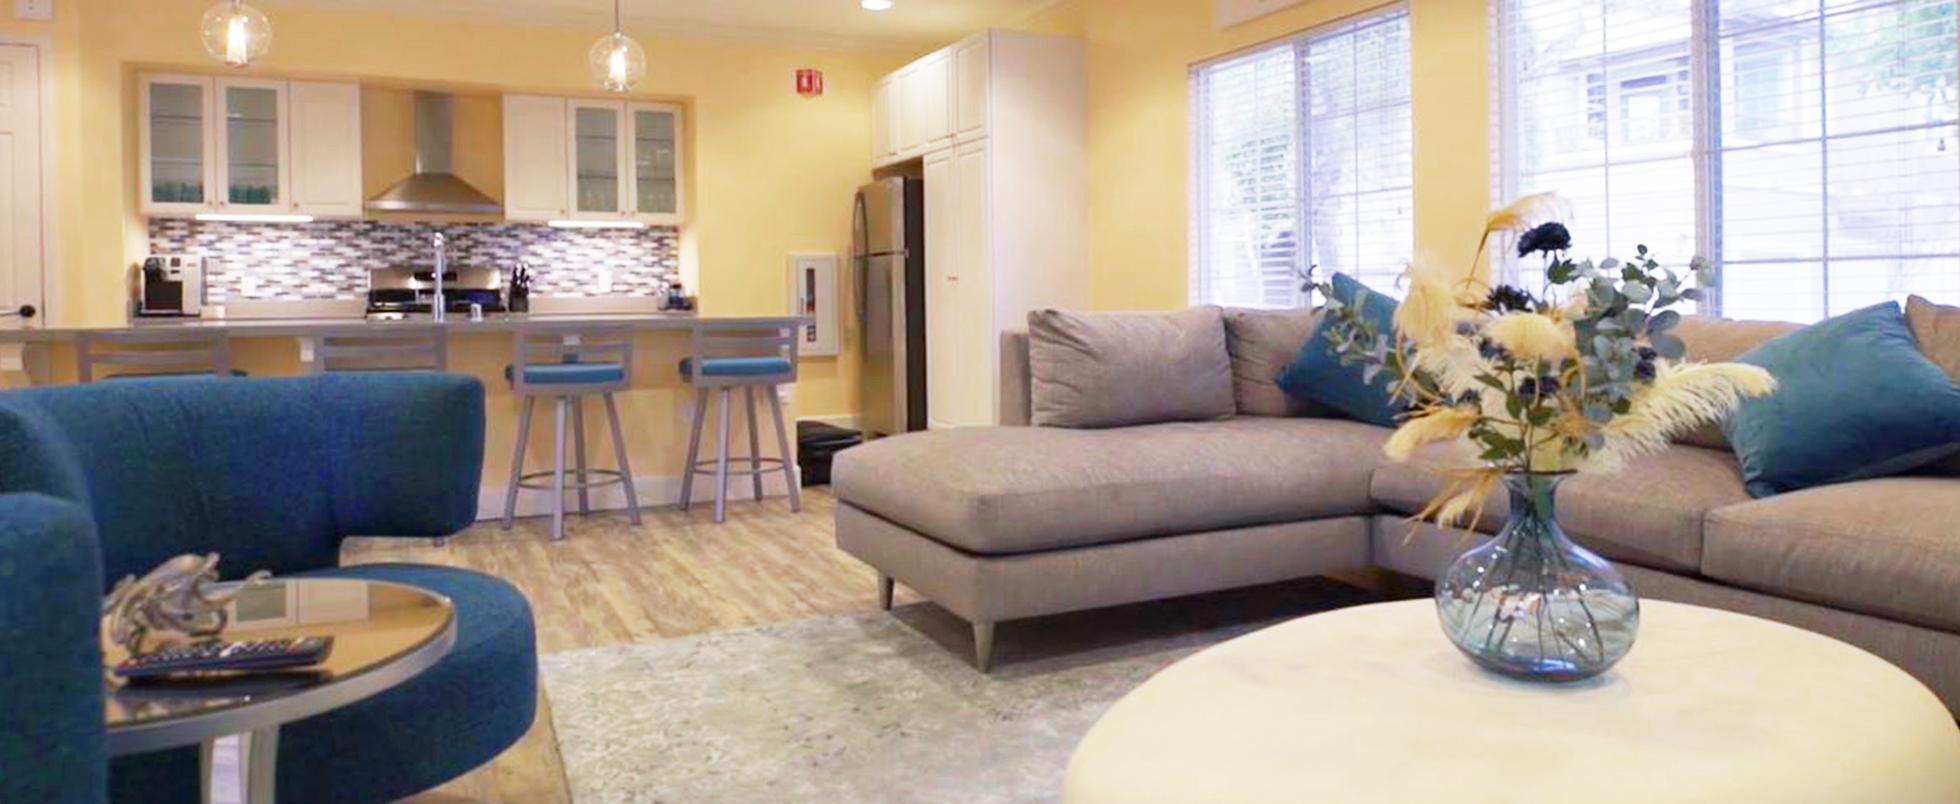 3 Bedroom Apartments San Diego Aztec Campus Is Offering 3